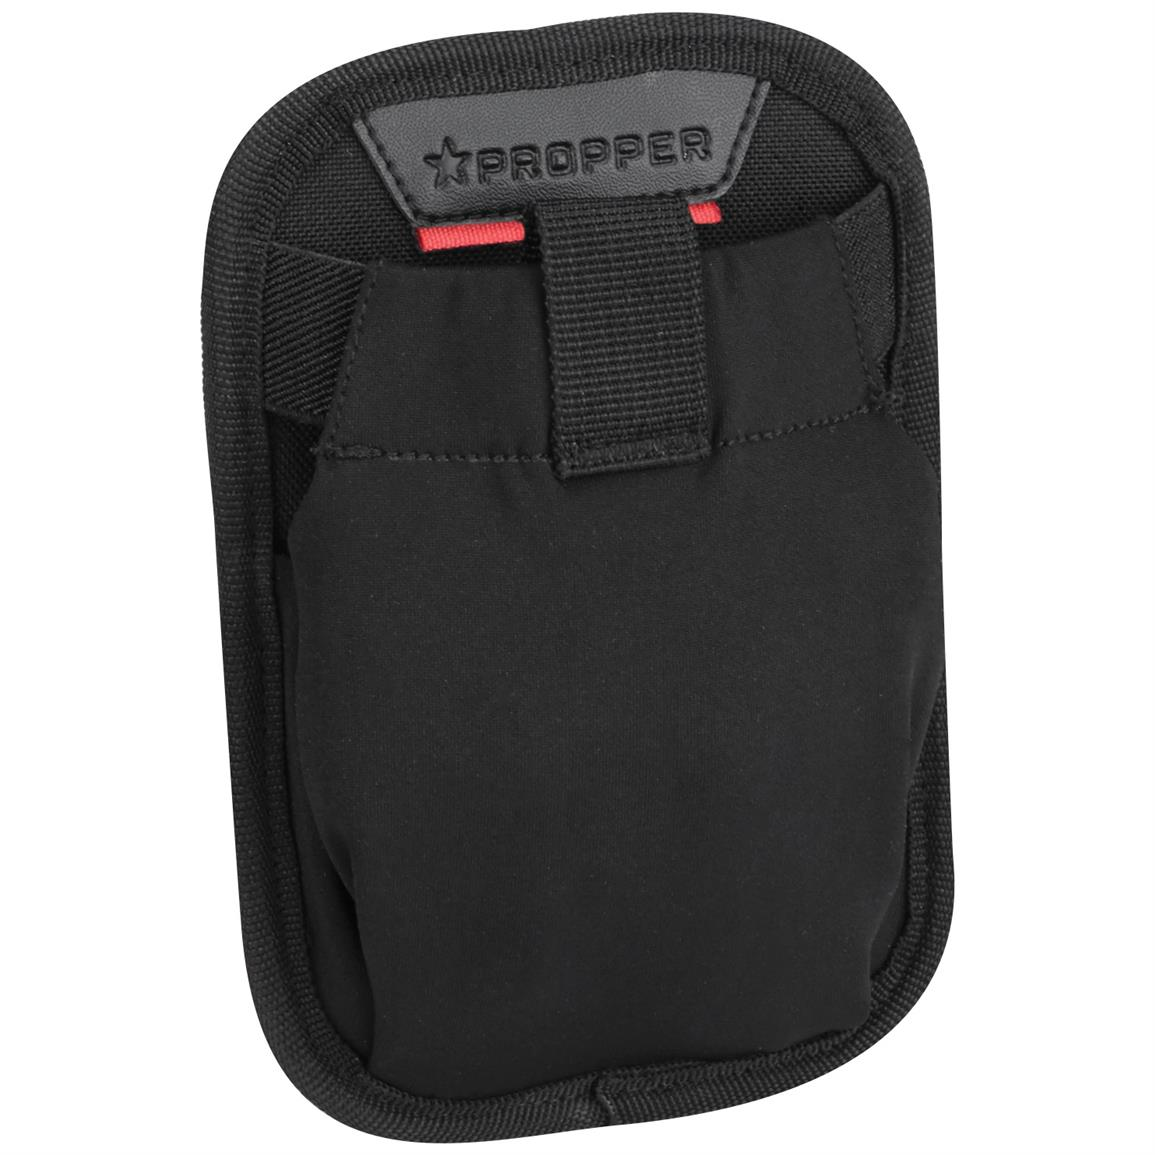 "Propper 7"" x 5"" Stretch Dump Pocket with MOLLE, Black"